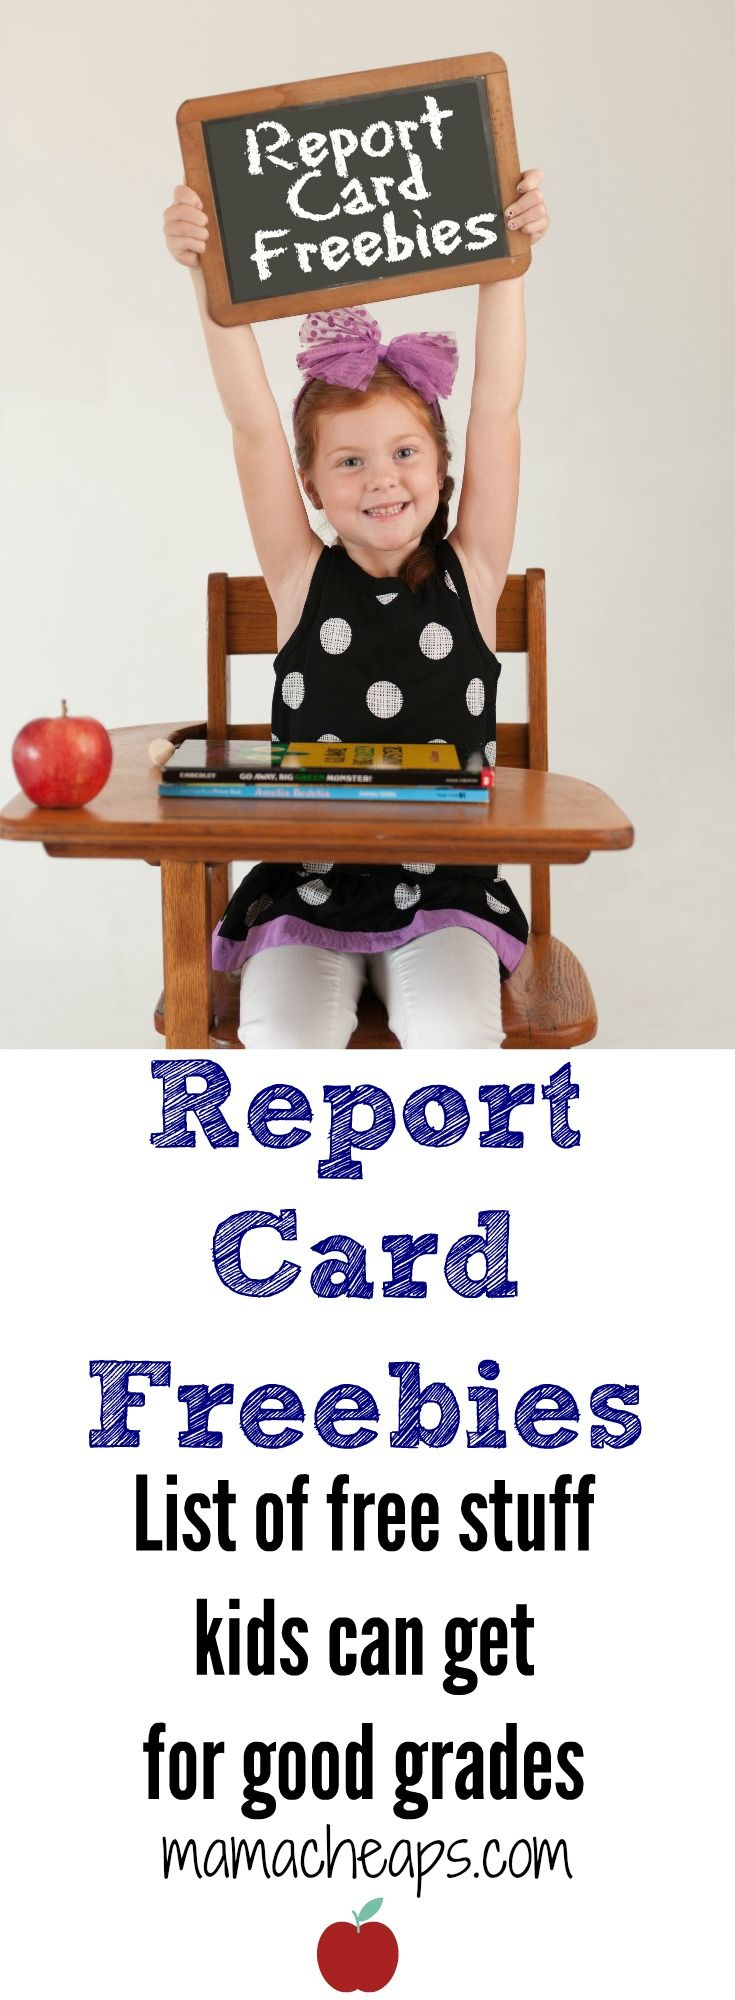 Report Card Freebies – FREE STUFF for Kids with Good Grades